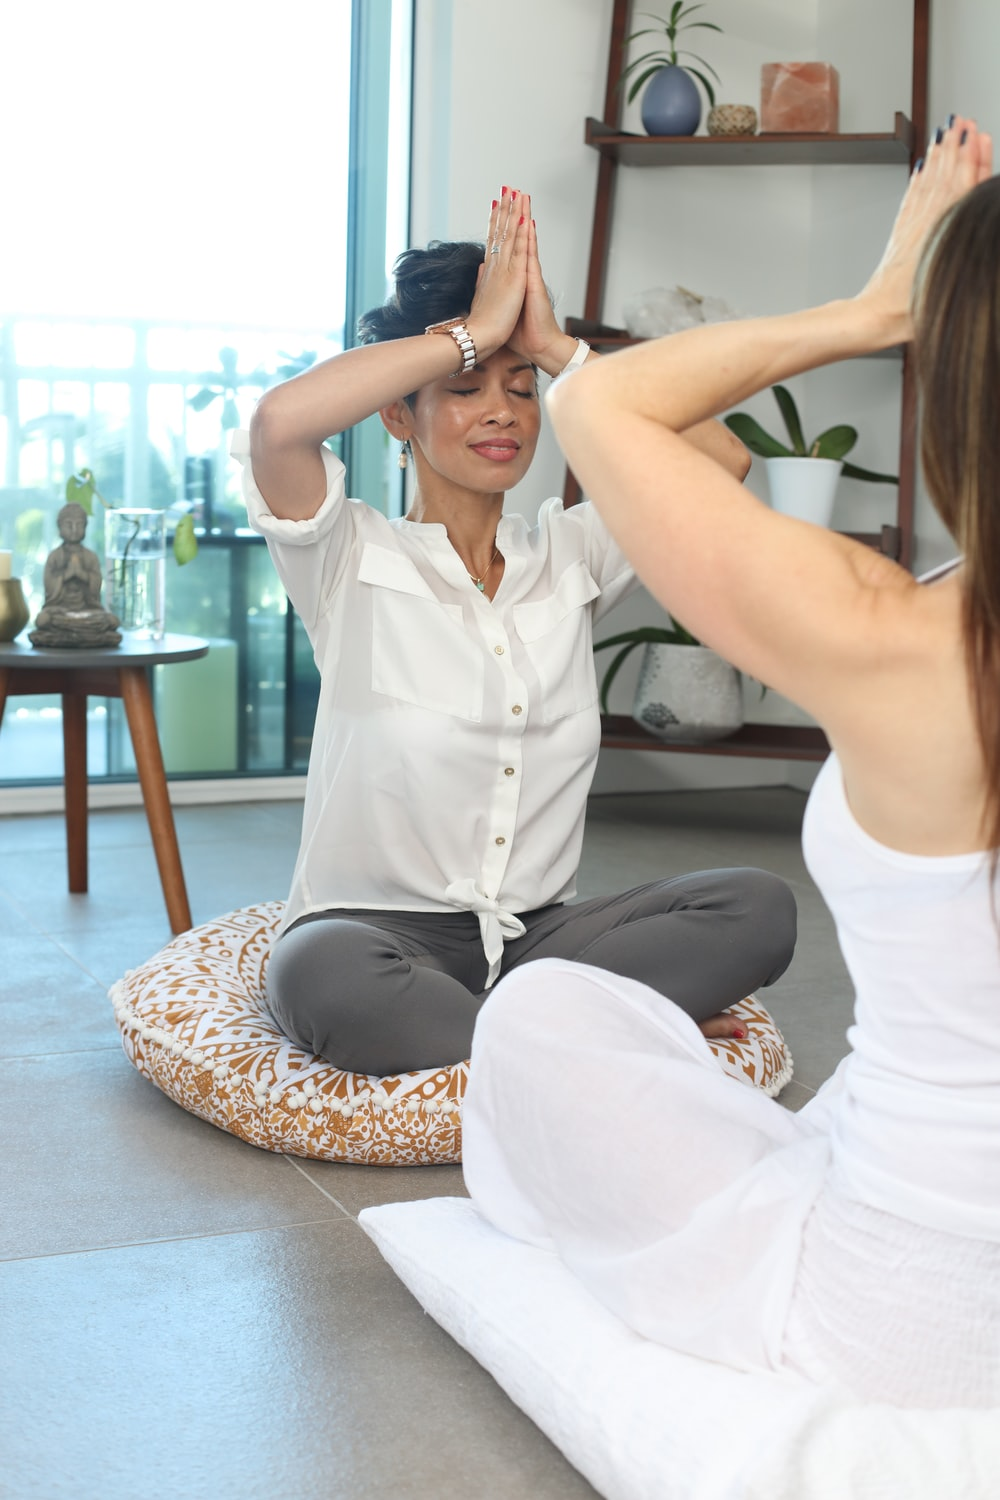 Benefits Of Chair Yoga: Explore More About It